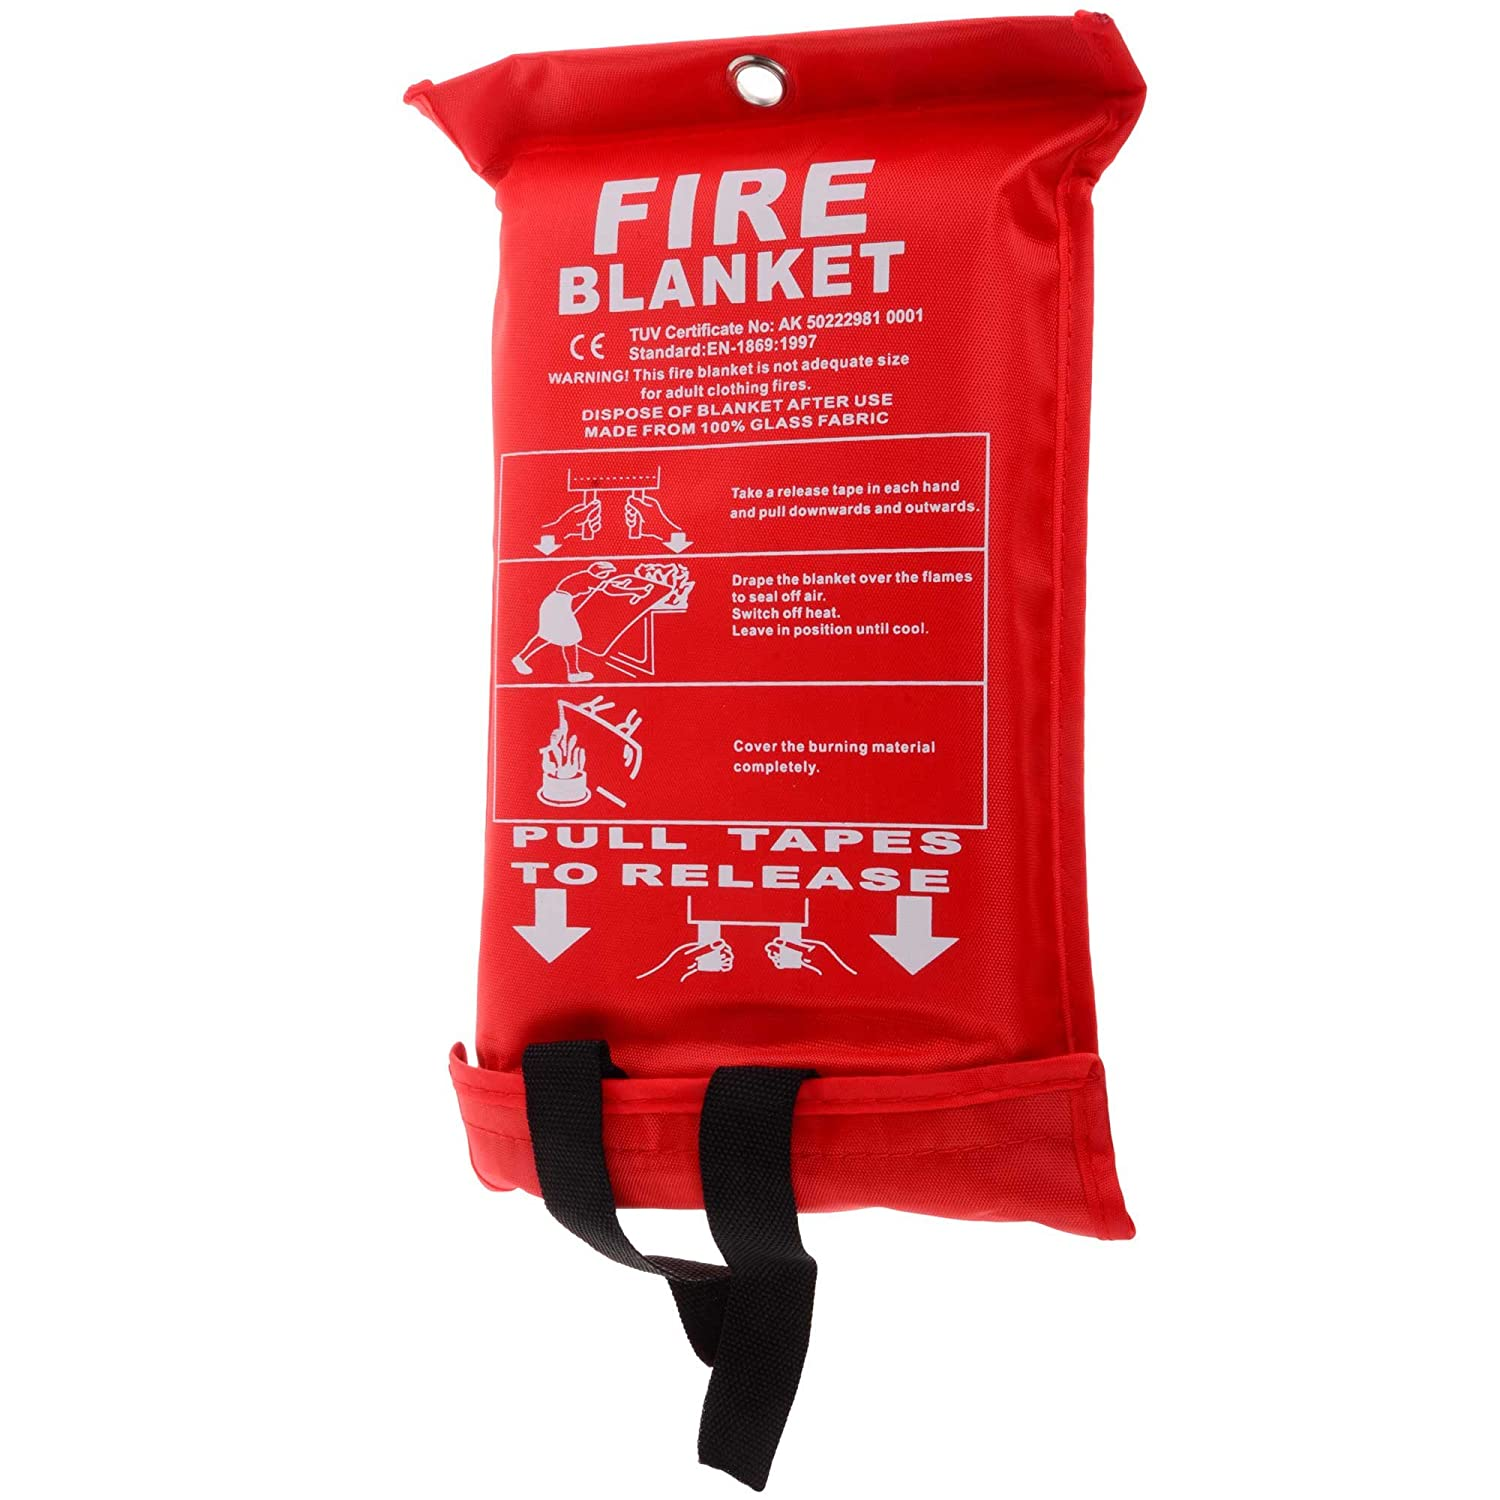 Fire Blanket, 1m x 1m in Size with Wall Mountable Case and Quick Release Tabs Blackspur